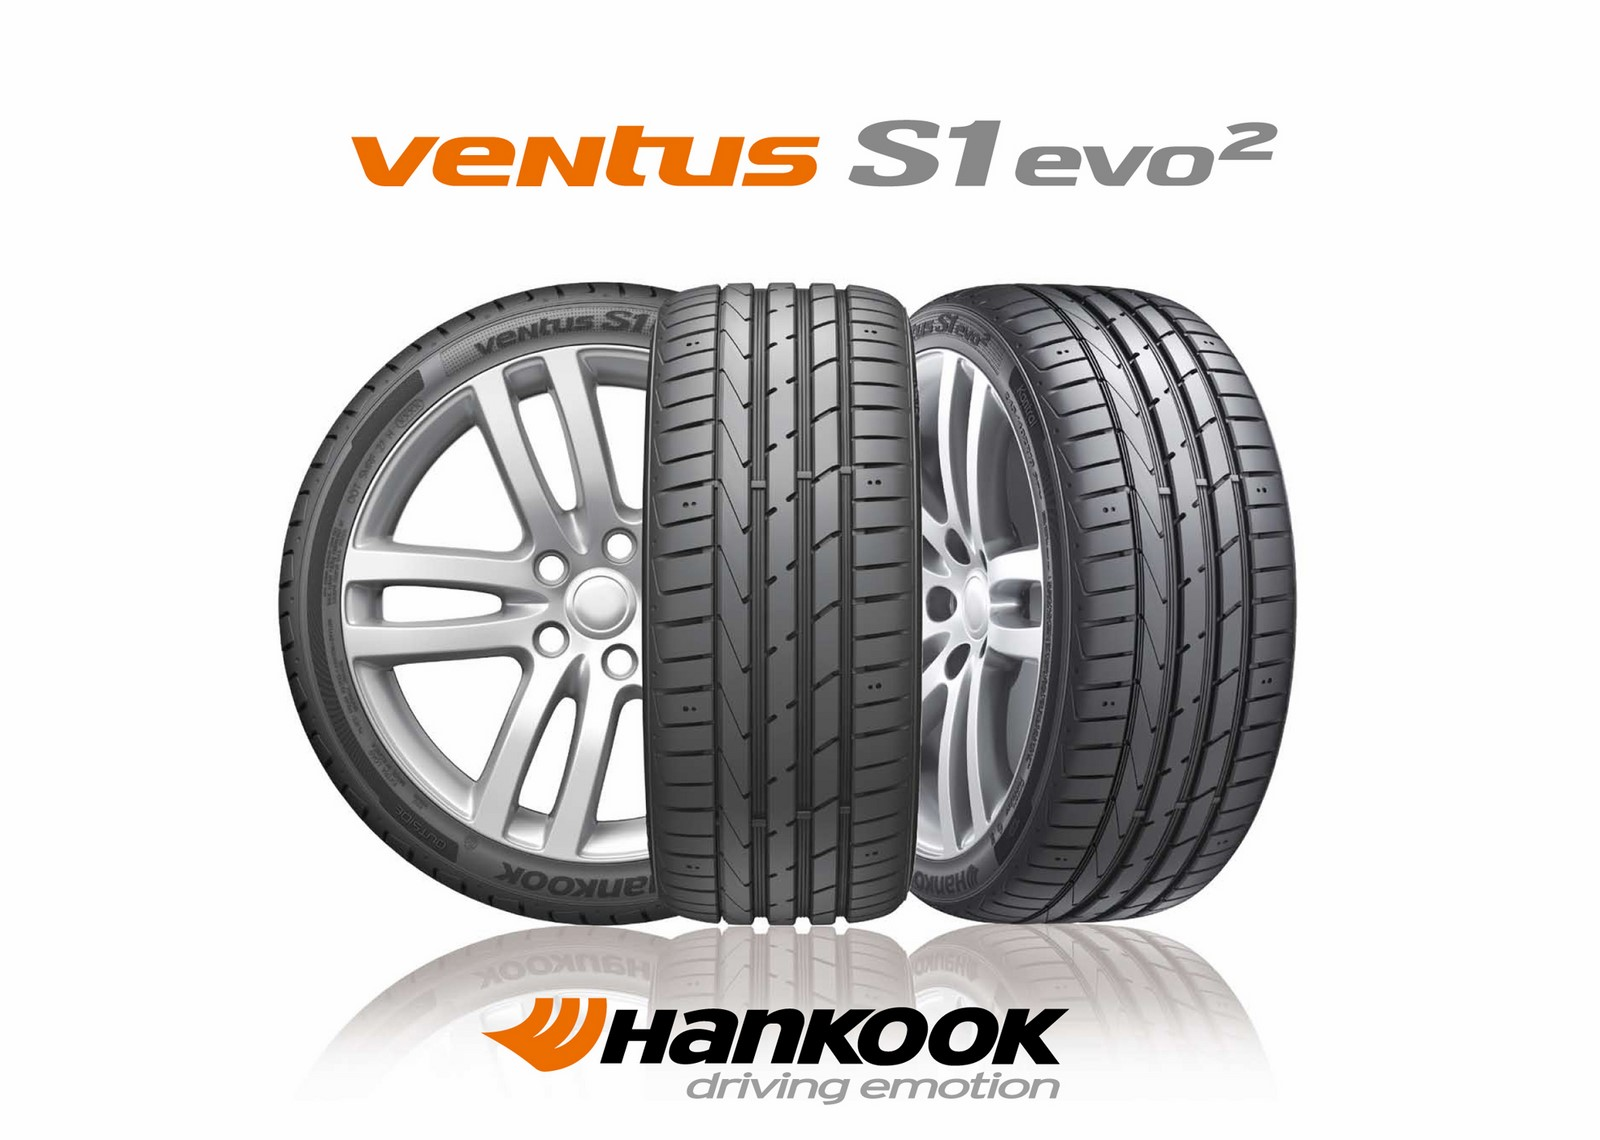 Hankook UHP Tire as OE on New Audi RS5 Coupe